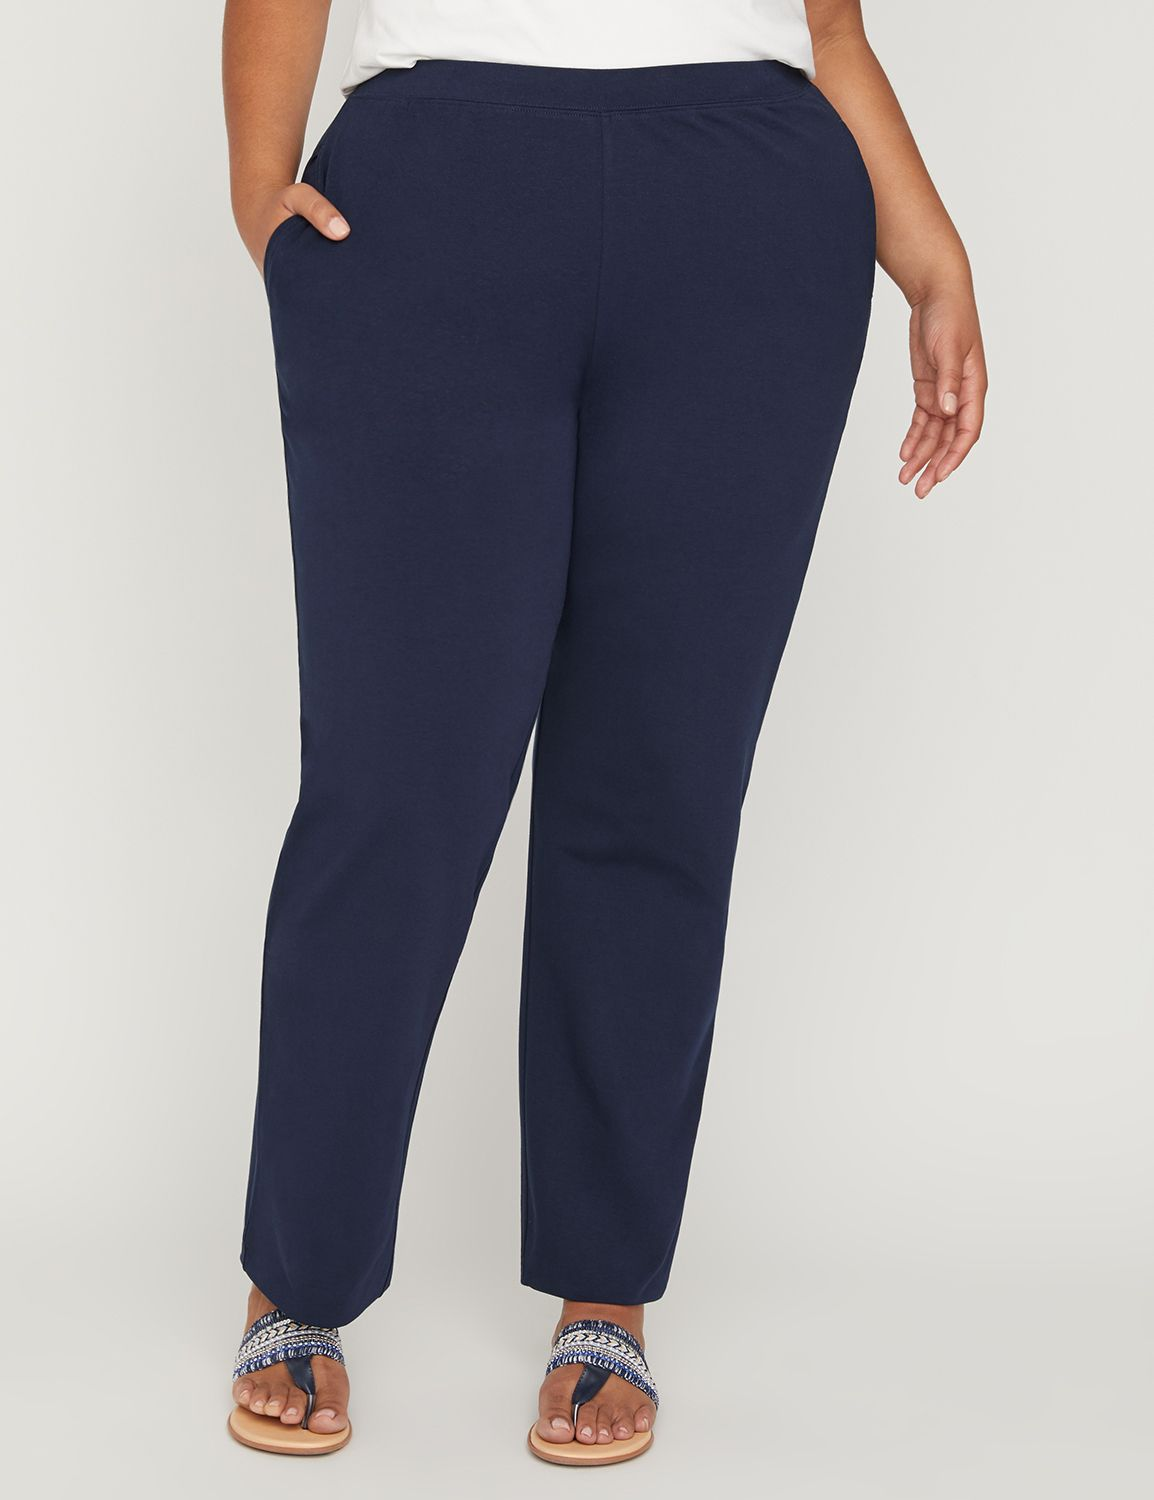 Suprema Knit Pant (Classic Colors) Suprema Knit Pant (Classic Colors) MP-300009687